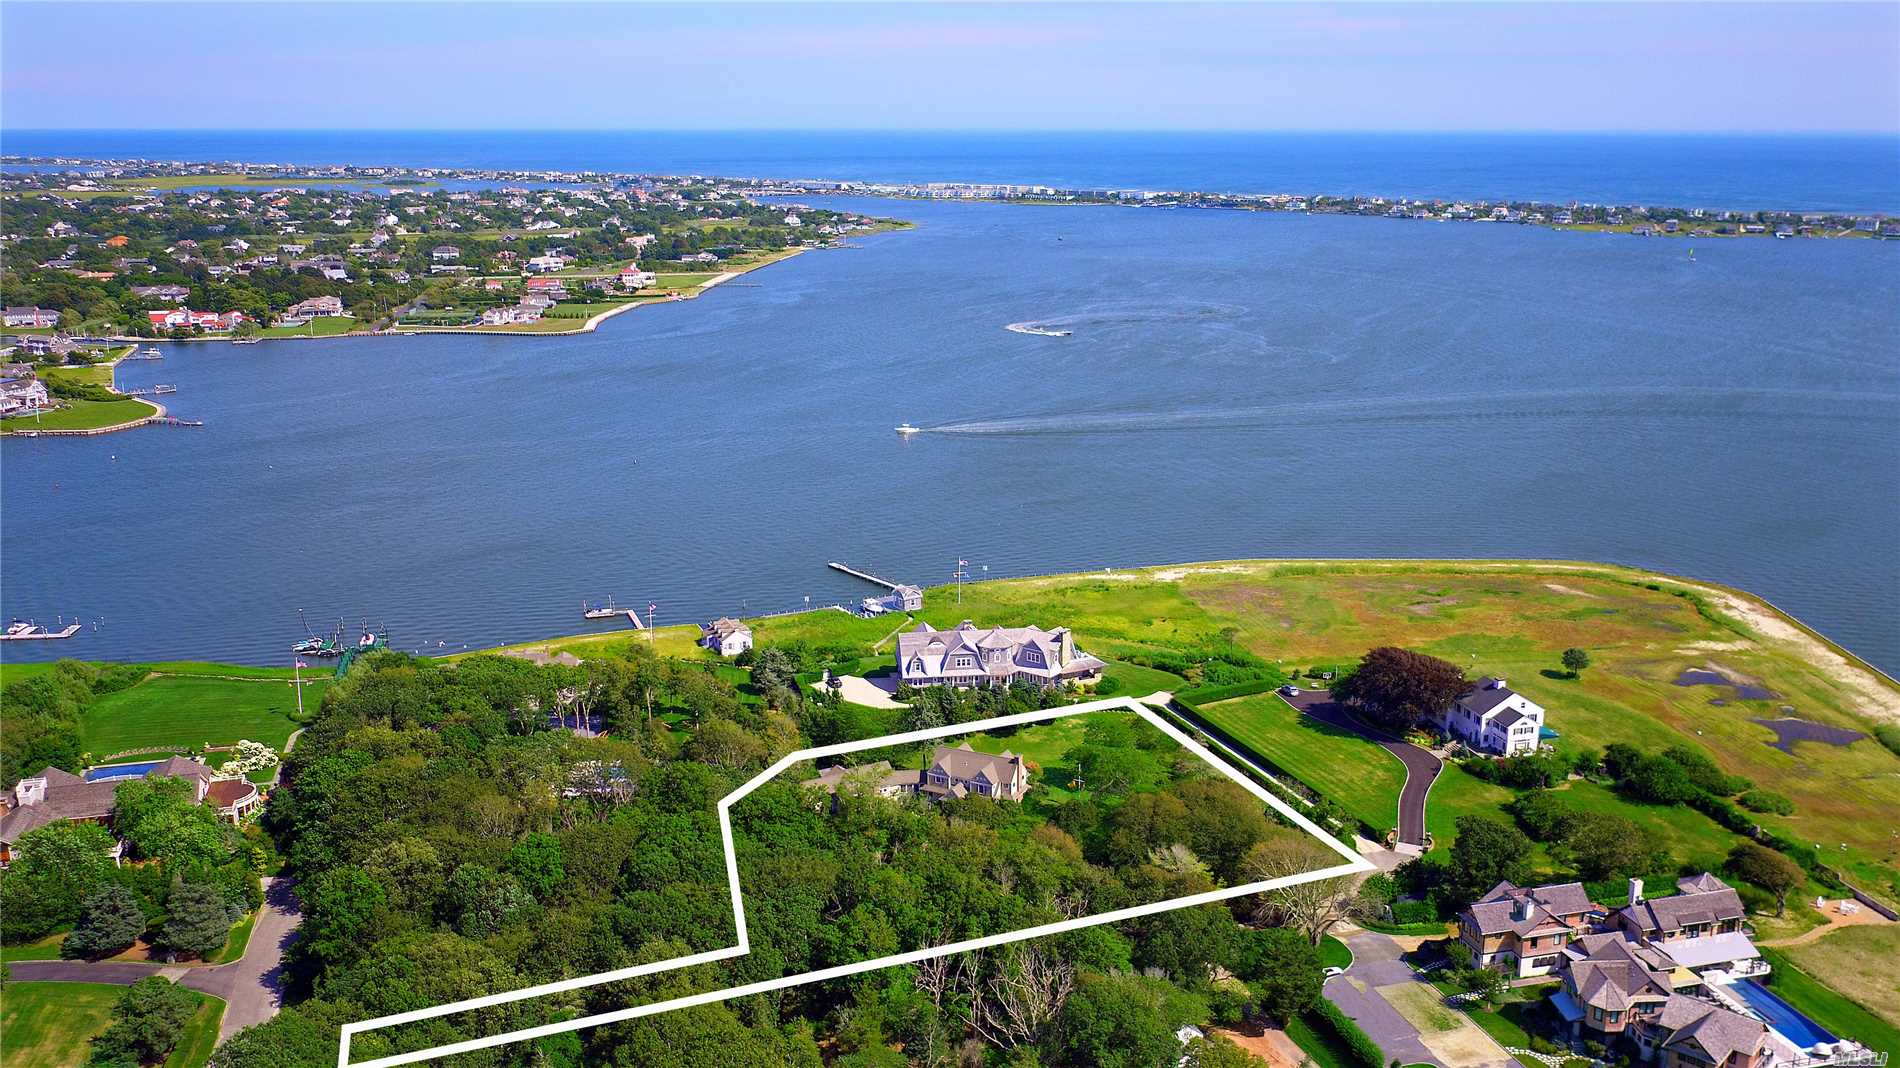 Secluded Country Living W/ Stunning Bay Views. Set On 1.84+/- Acres, You'll Find 4000 Sf Home W/ Unimpeded Views Of Moriches Bay. 1st Floor Has Open Floor Plan W/ Kitchen, Dining & Family Room W/ Fireplace. 2nd Floor Boasts En-Suite Guest Bdrm & Large Master Suite W/ Fireplace, En-Suite Ba, & Balcony. Adjacent To Main House Is A Separate Guest Wing Offering 3 Bdrms, 2 Ba, Kitchen, Loft, & Living Rm W/ Fireplace. Outdoors You'll Find Expansive Decking, Rolling Lawns, & Breathtaking Water Views.